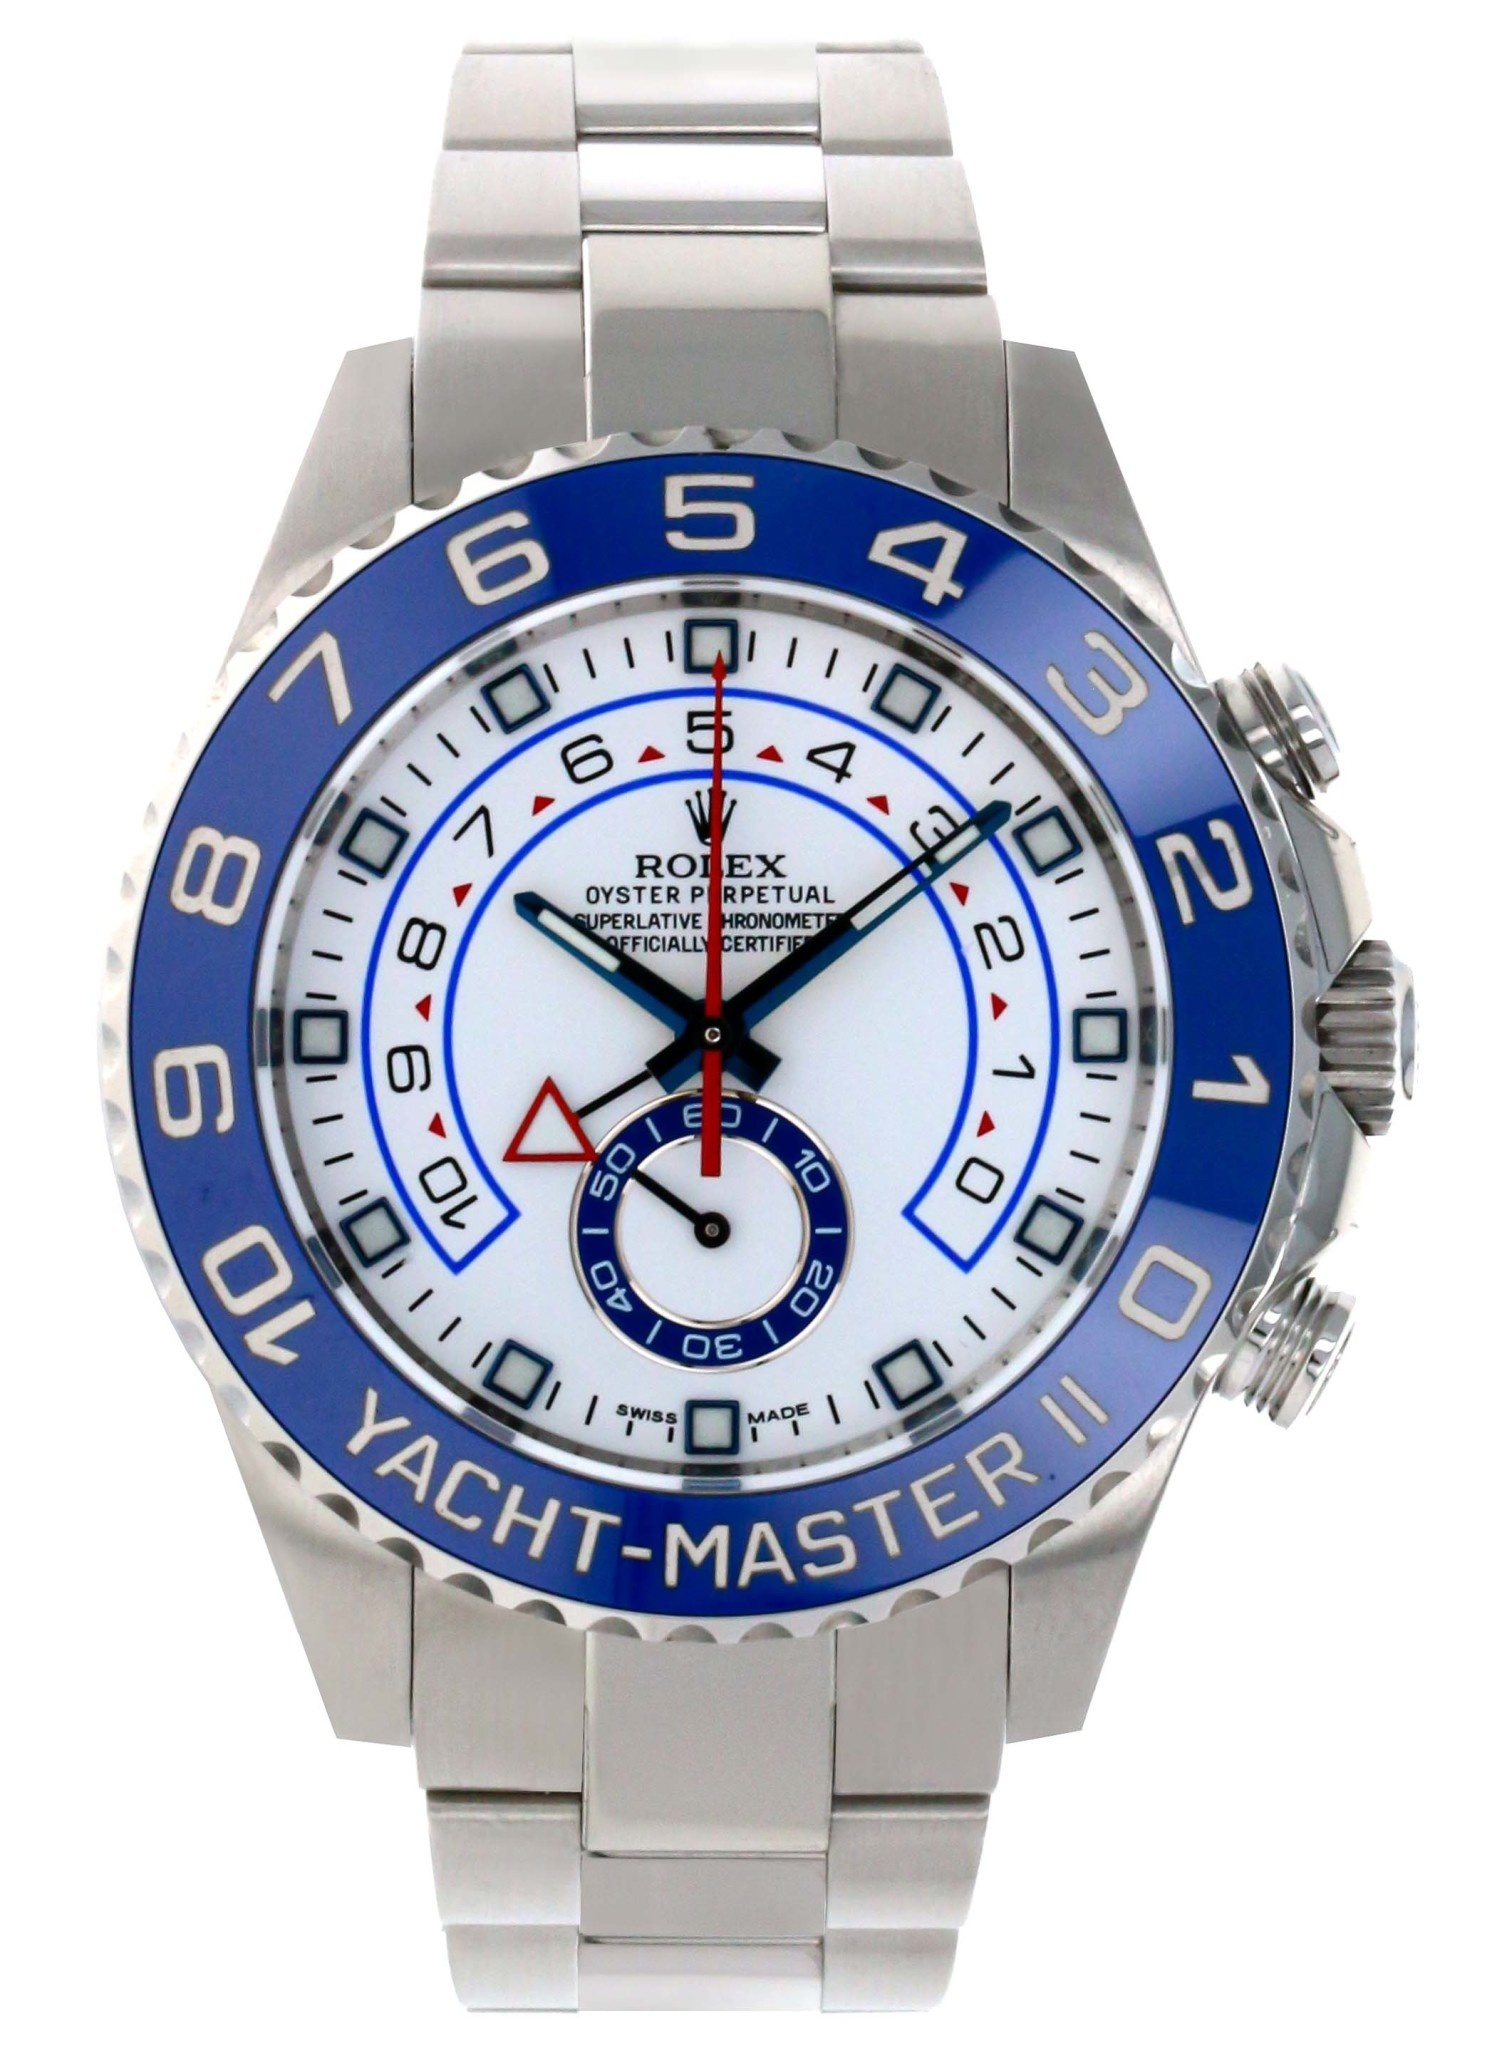 What is the best luxury watch for men